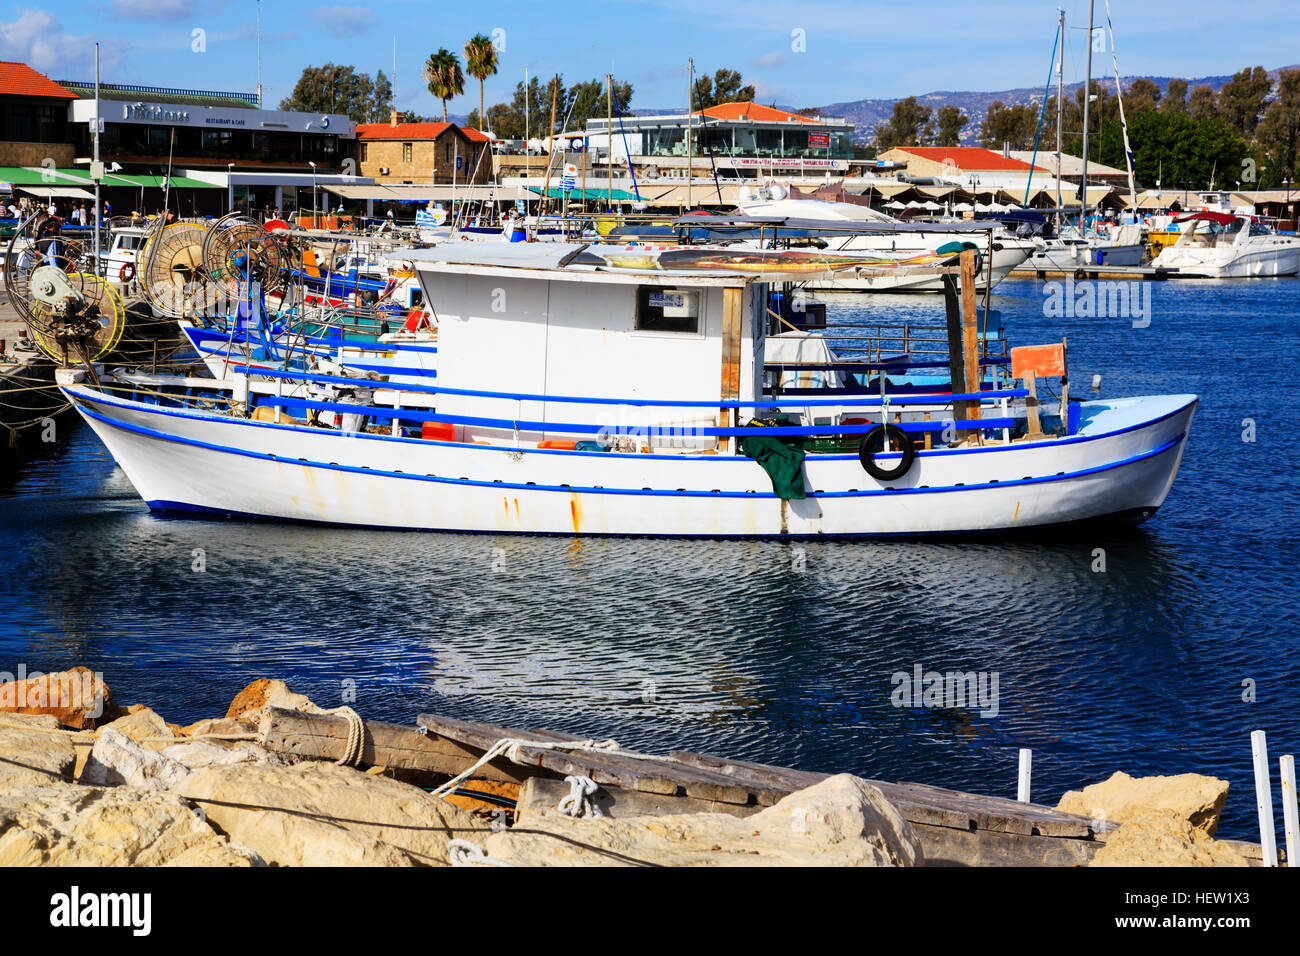 Boats in Paphos Harbour, Cyprus. - Stock Image